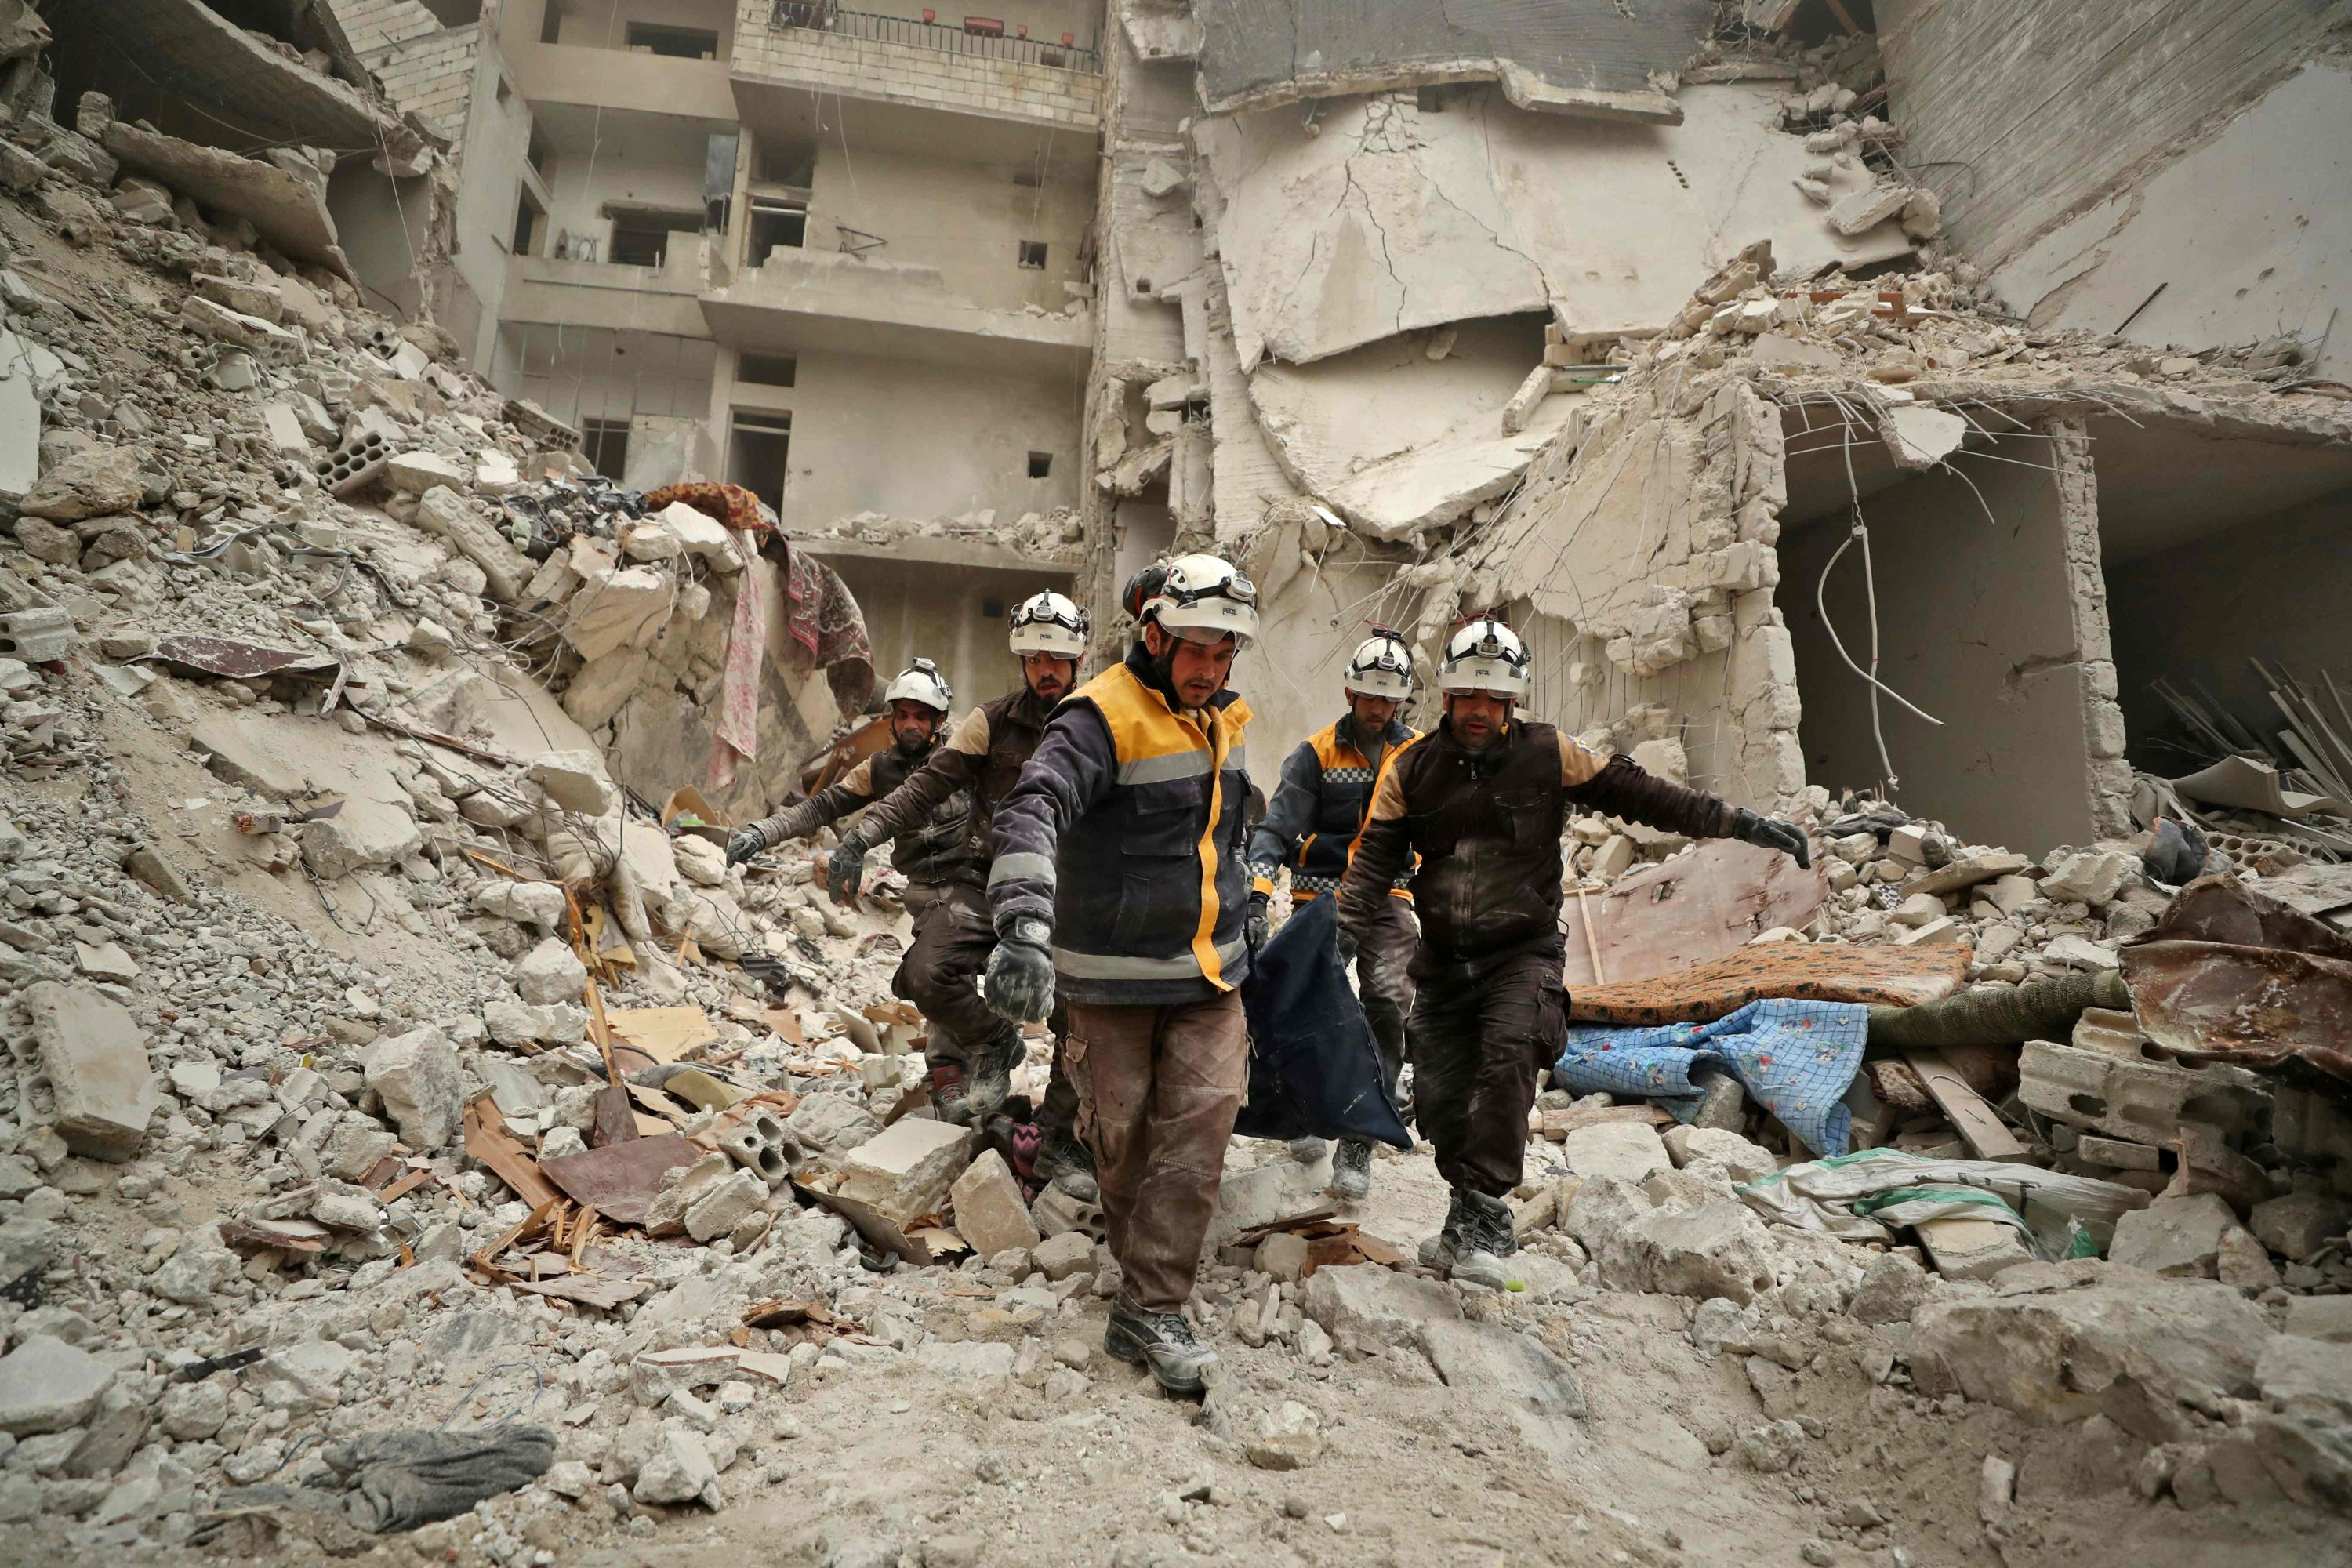 Rescue workers known as the White Helmets carry away the body of a victim found amid the rubble of a building hit during an airstrike by pro-regime forces on the opposition-held town of Ariha in the northern countryside of Idlib province, Syria, Feb. 5, 2020. (AFP Photo)